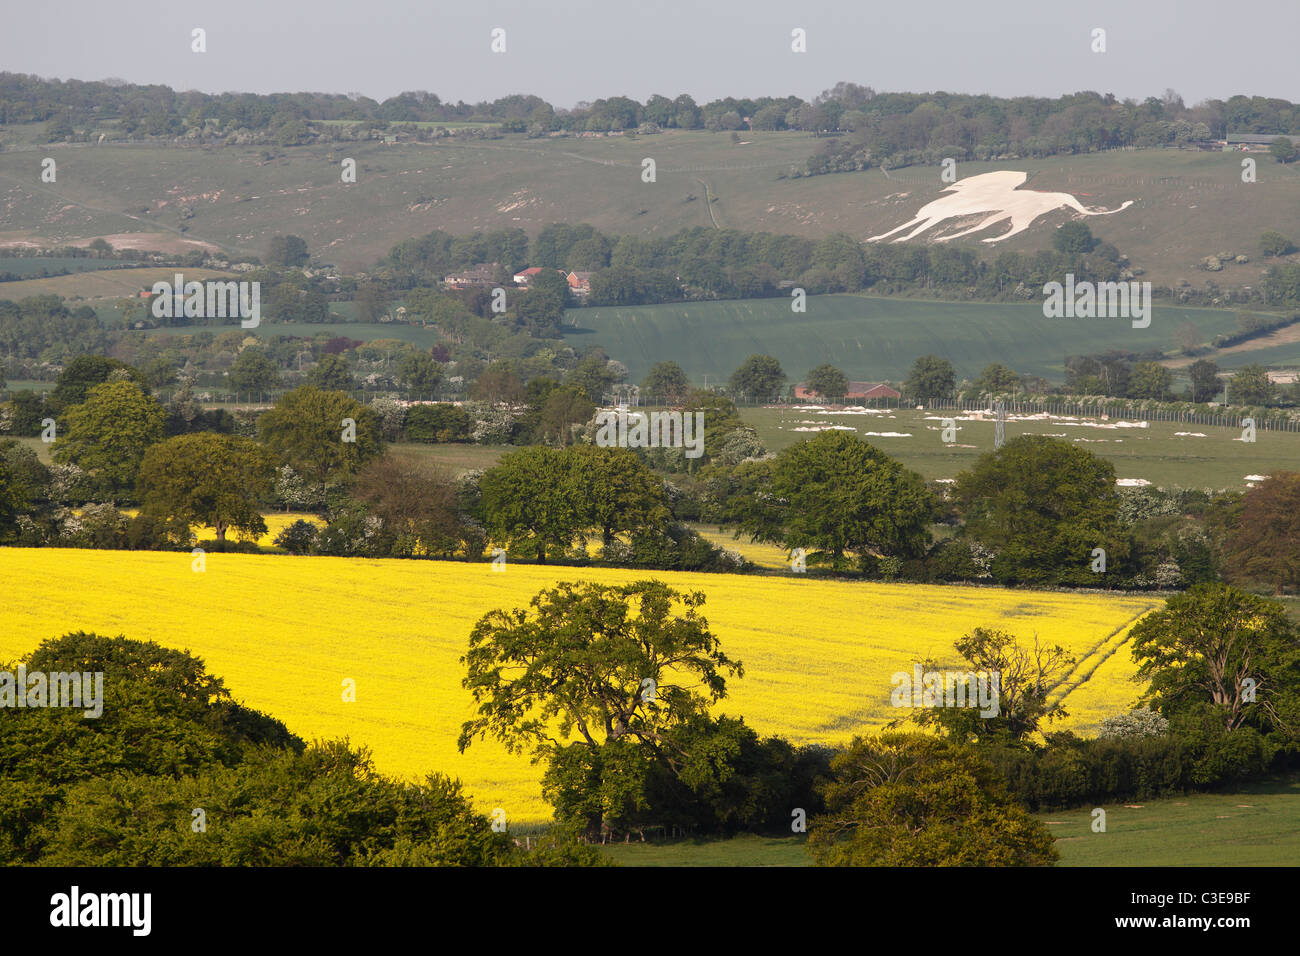 English landscape, Chilterns countryside, Buckinghamshire, 'Whipsnade Zoo' chalk lion in distance - Stock Image